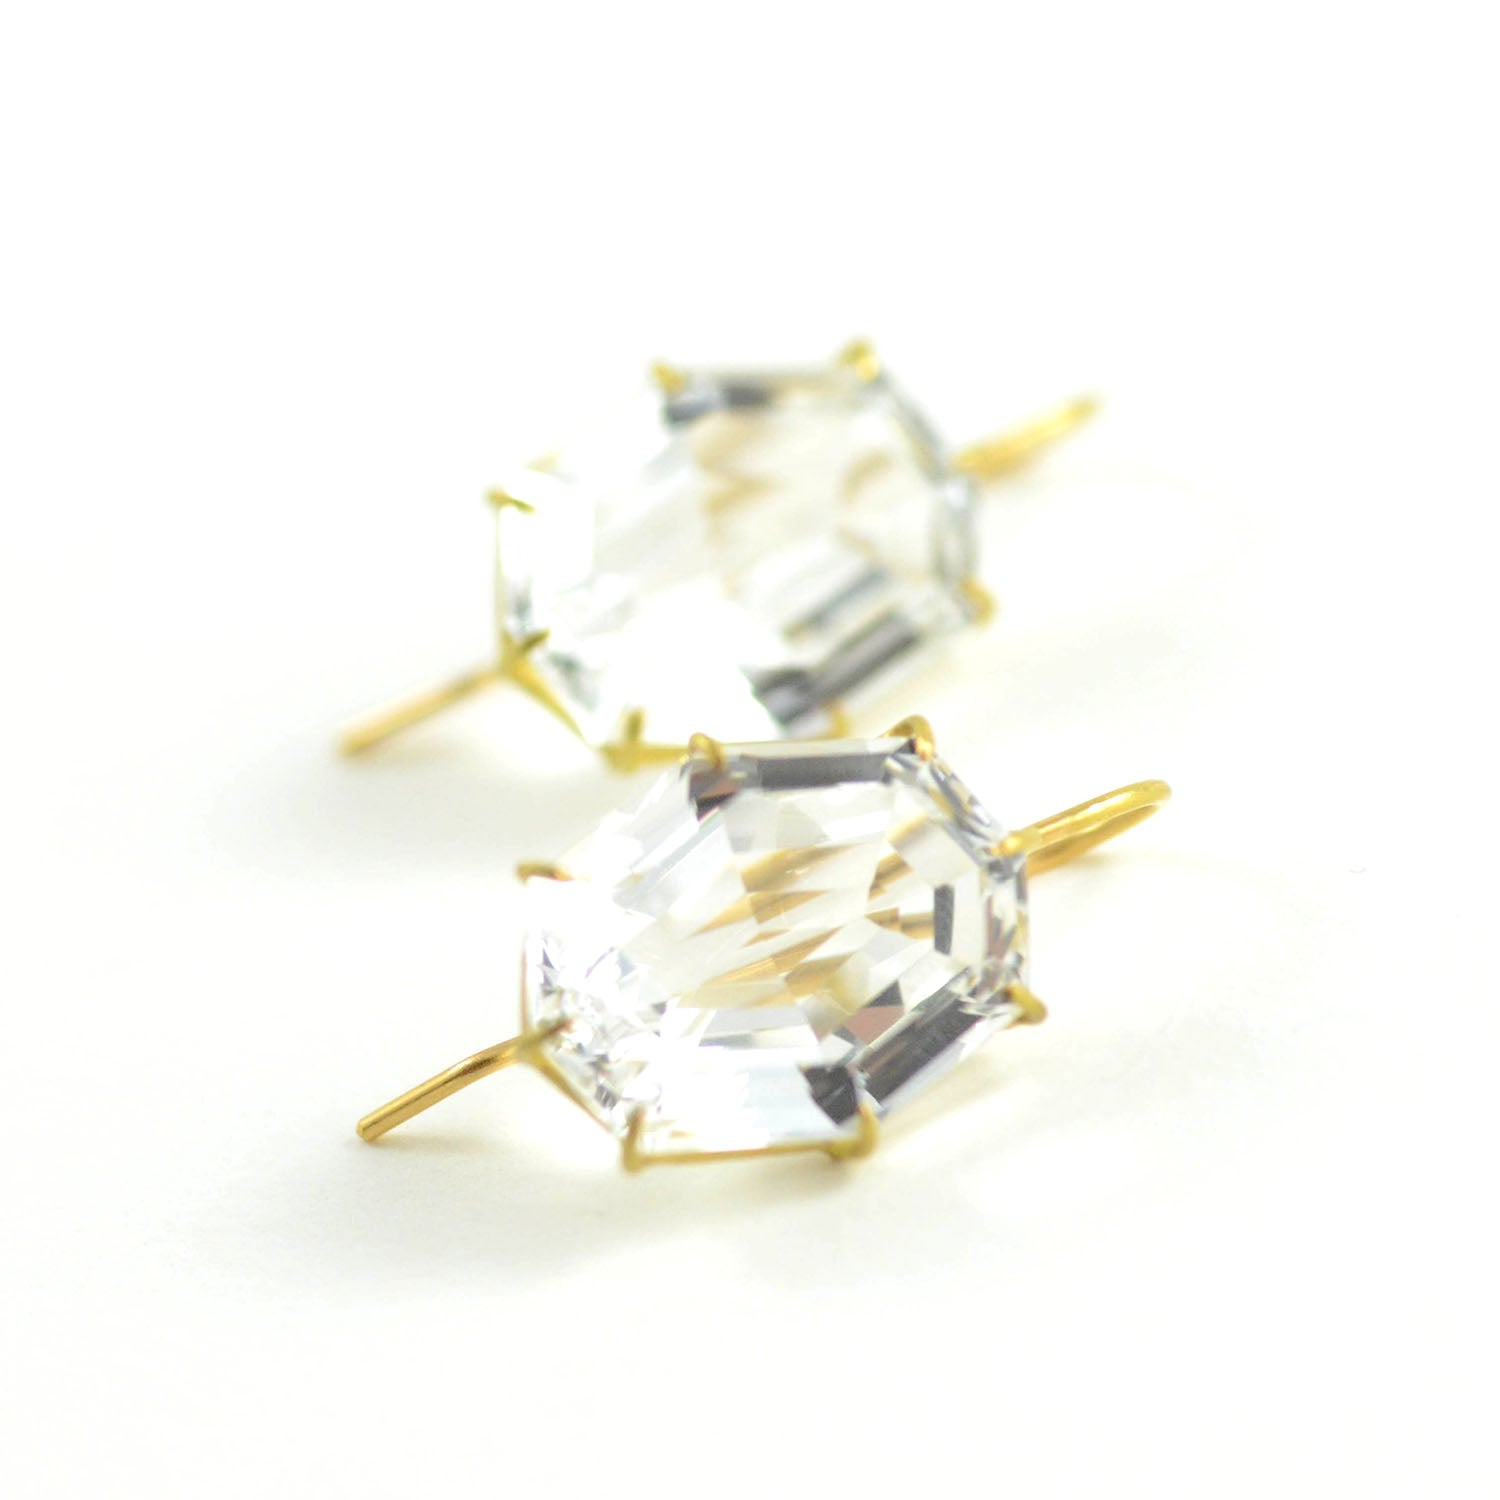 Rosanne Pugliese Faceted White Topaz Octagonal North South 18 Karat Yellow Gold French Wires